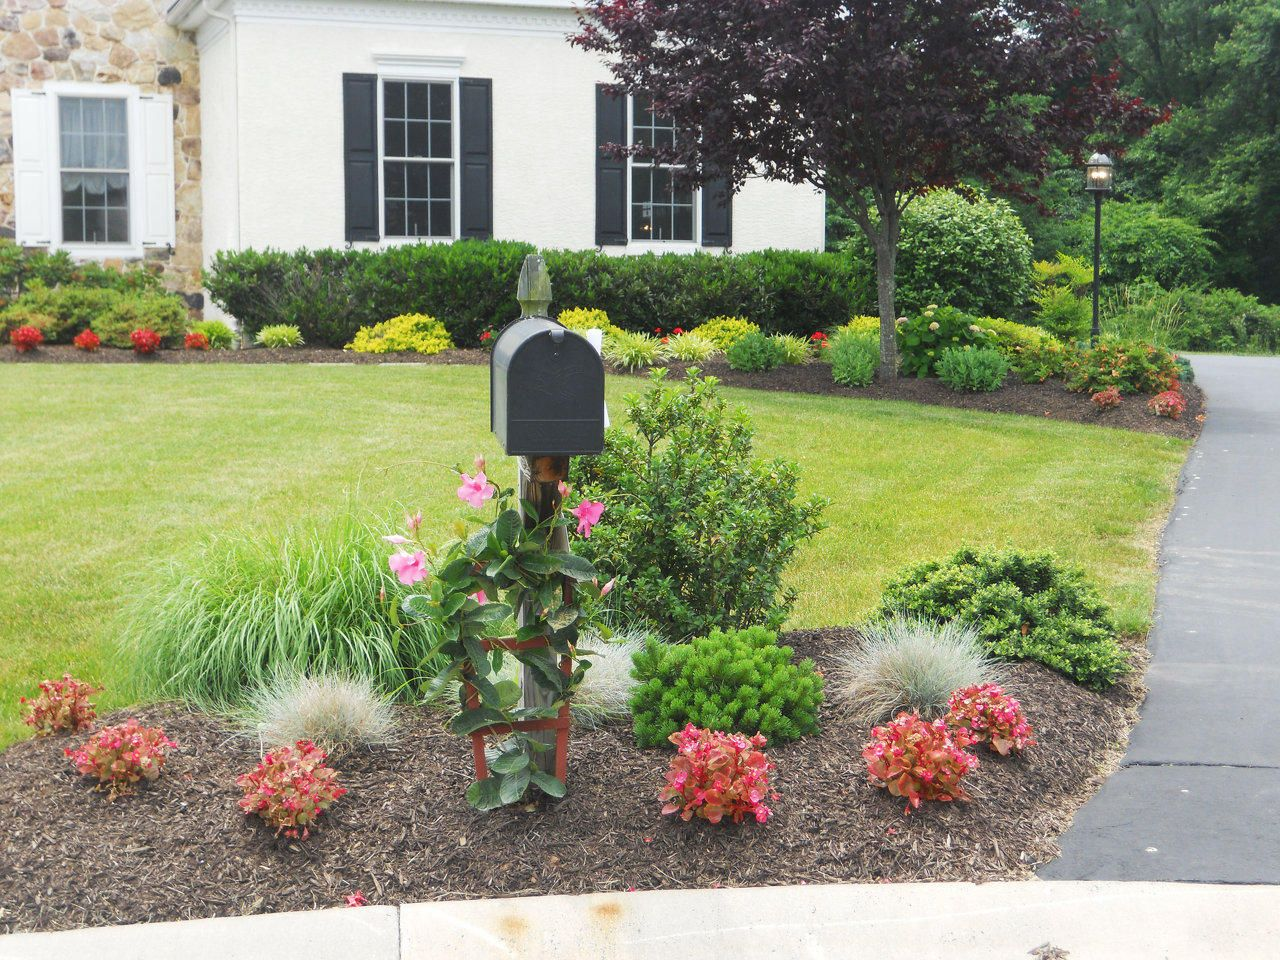 Mailbox Landscaping Google Search Mailbox Landscaping Mailbox Garden Mailbox Plants